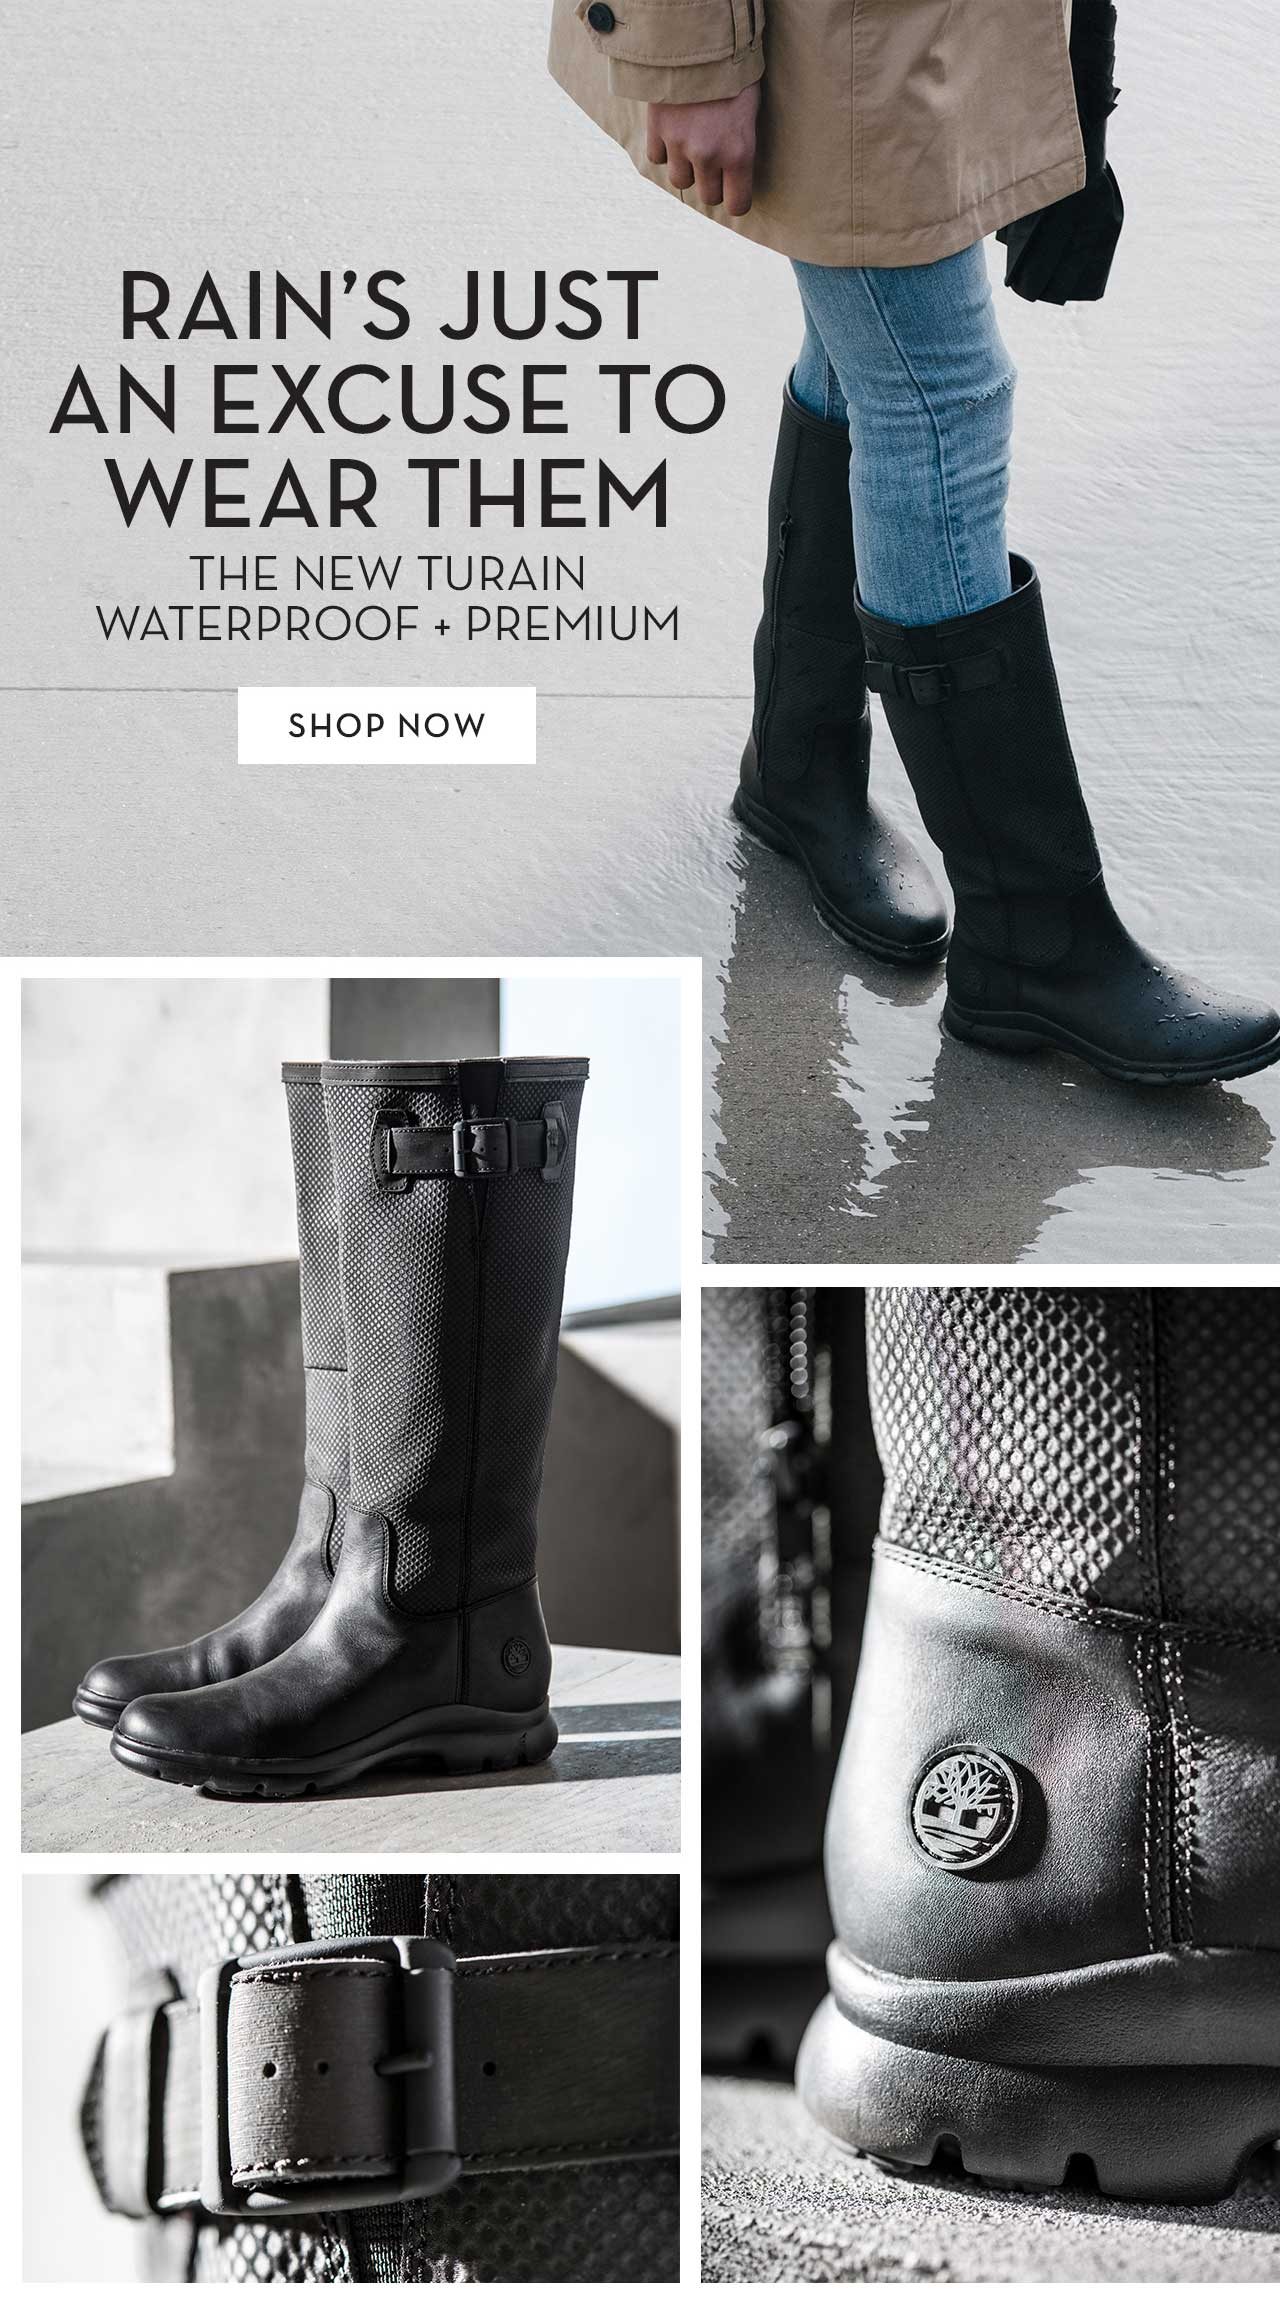 Rain's Just An Excuse To Wear Them The New Turain Waterproof + Premium Shop Now